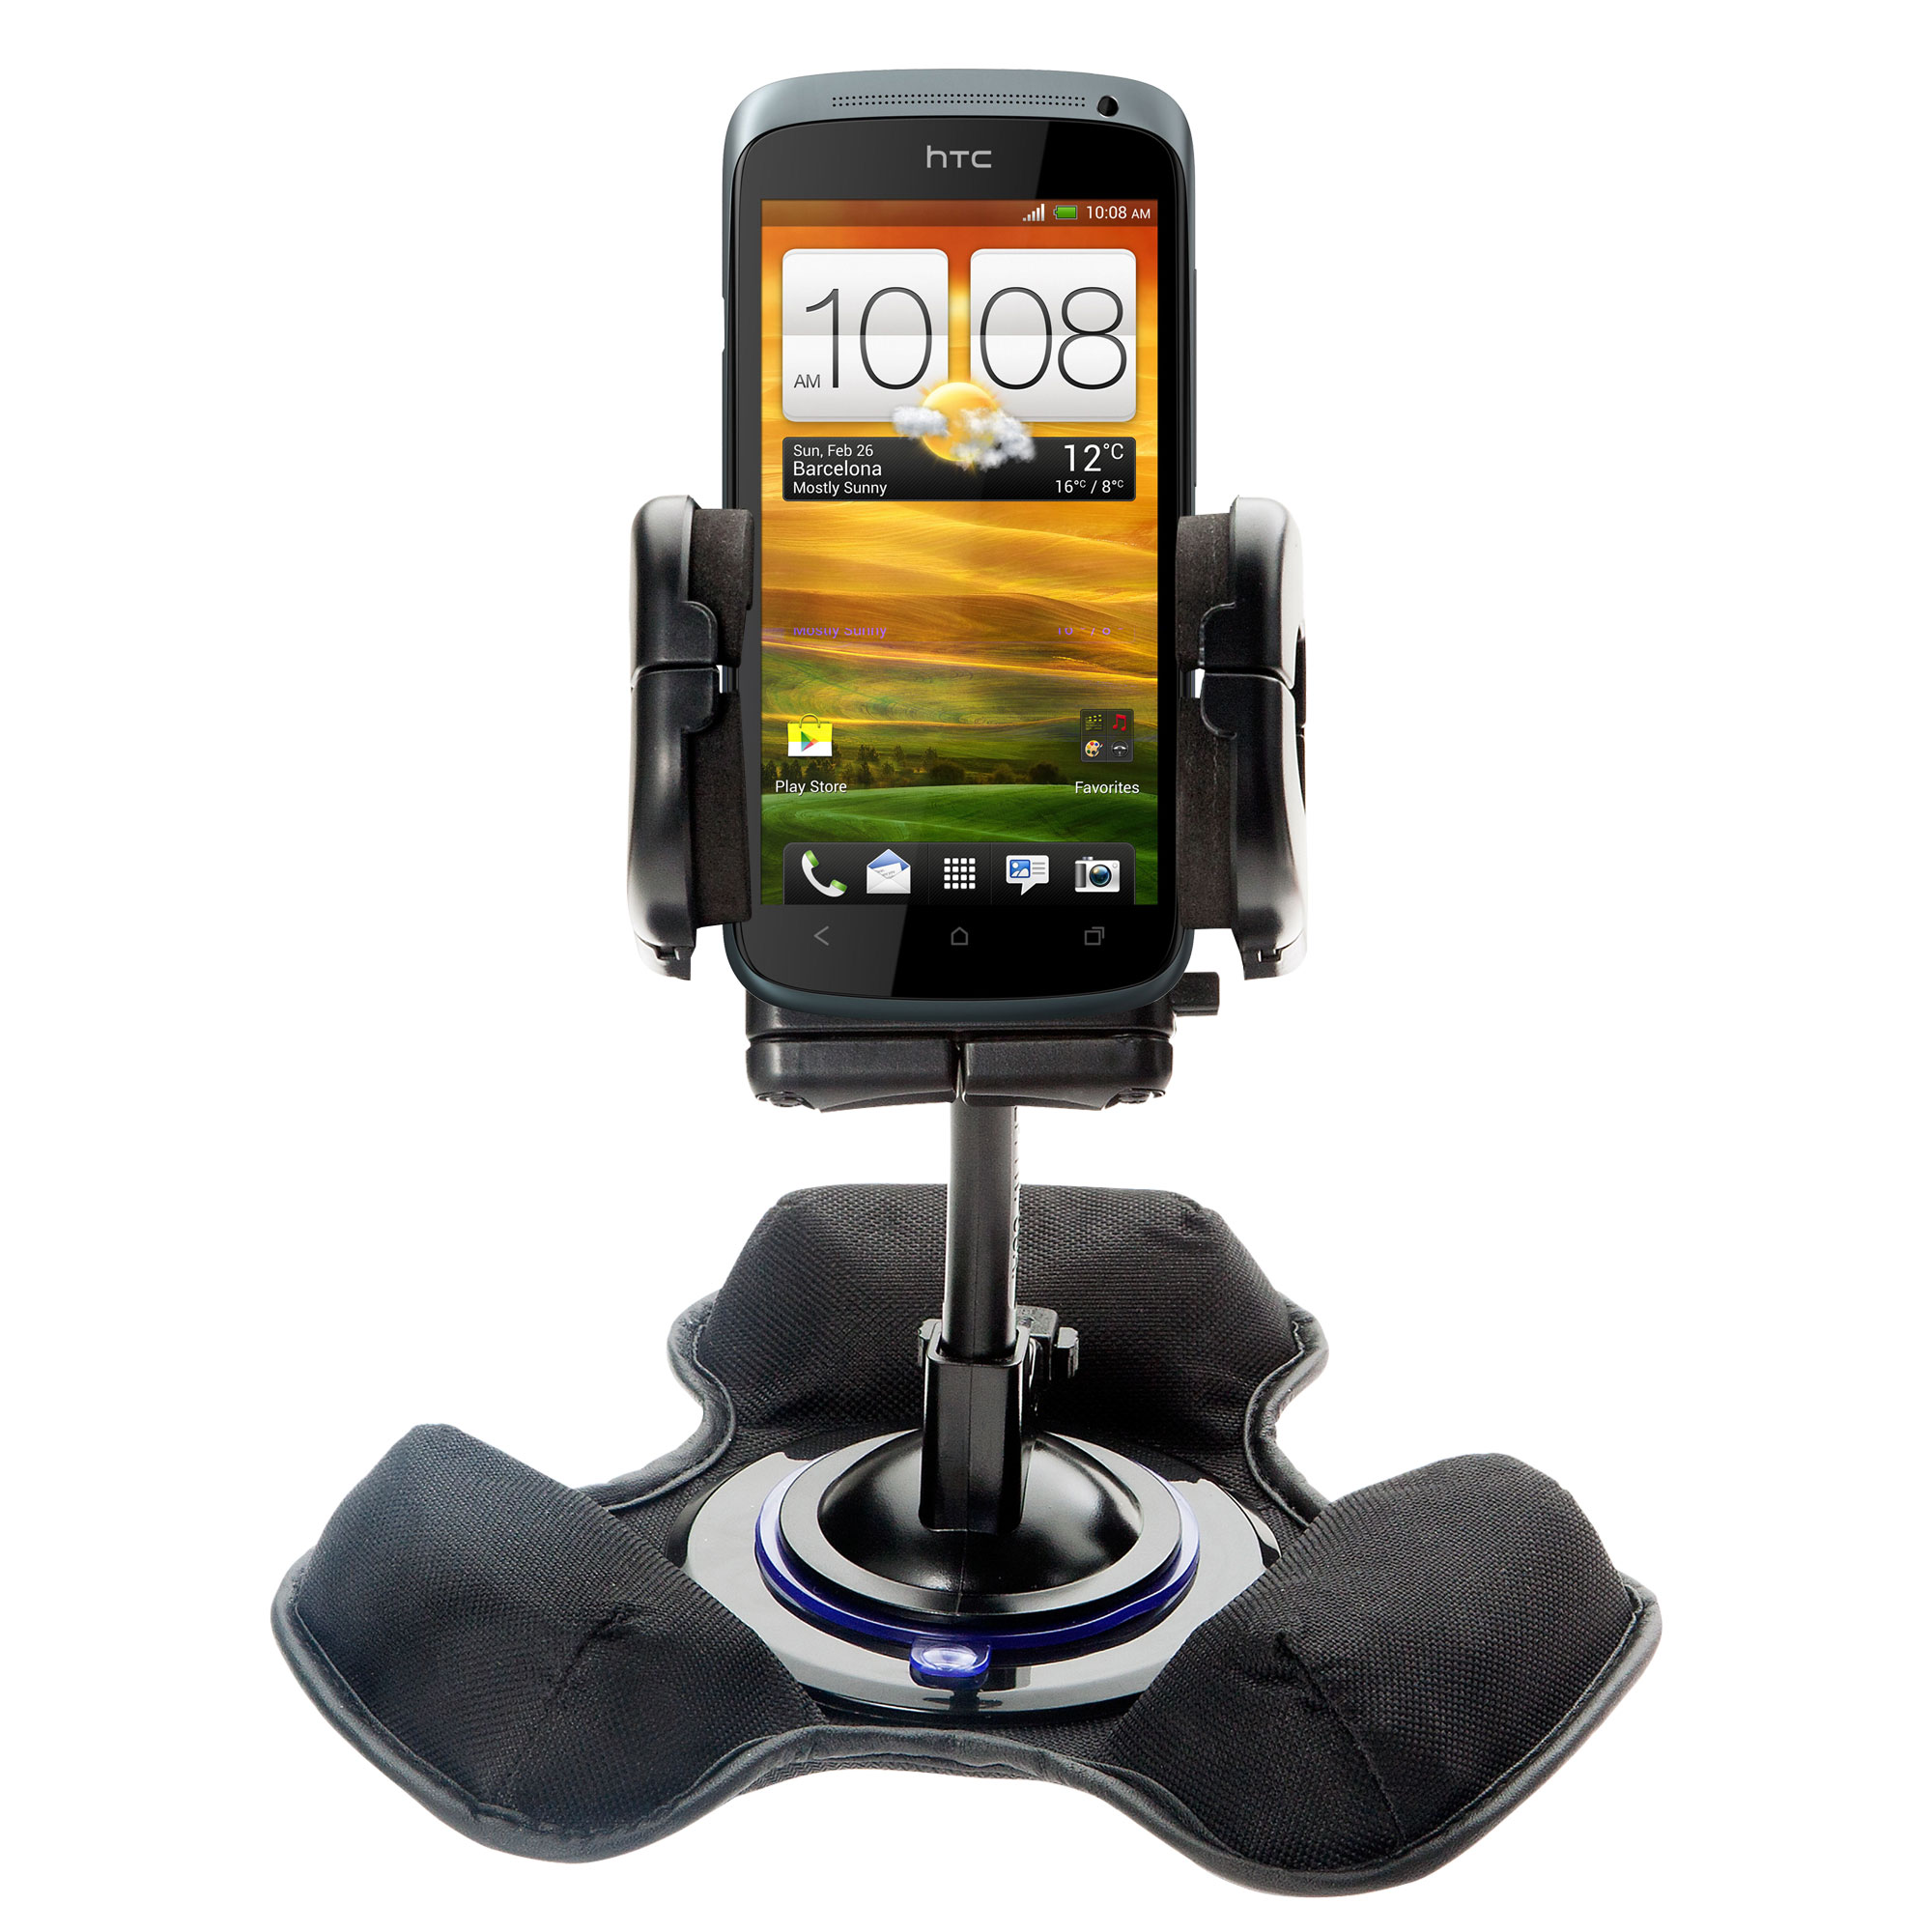 Dash and Windshield Holder compatible with the HTC One S / Ville